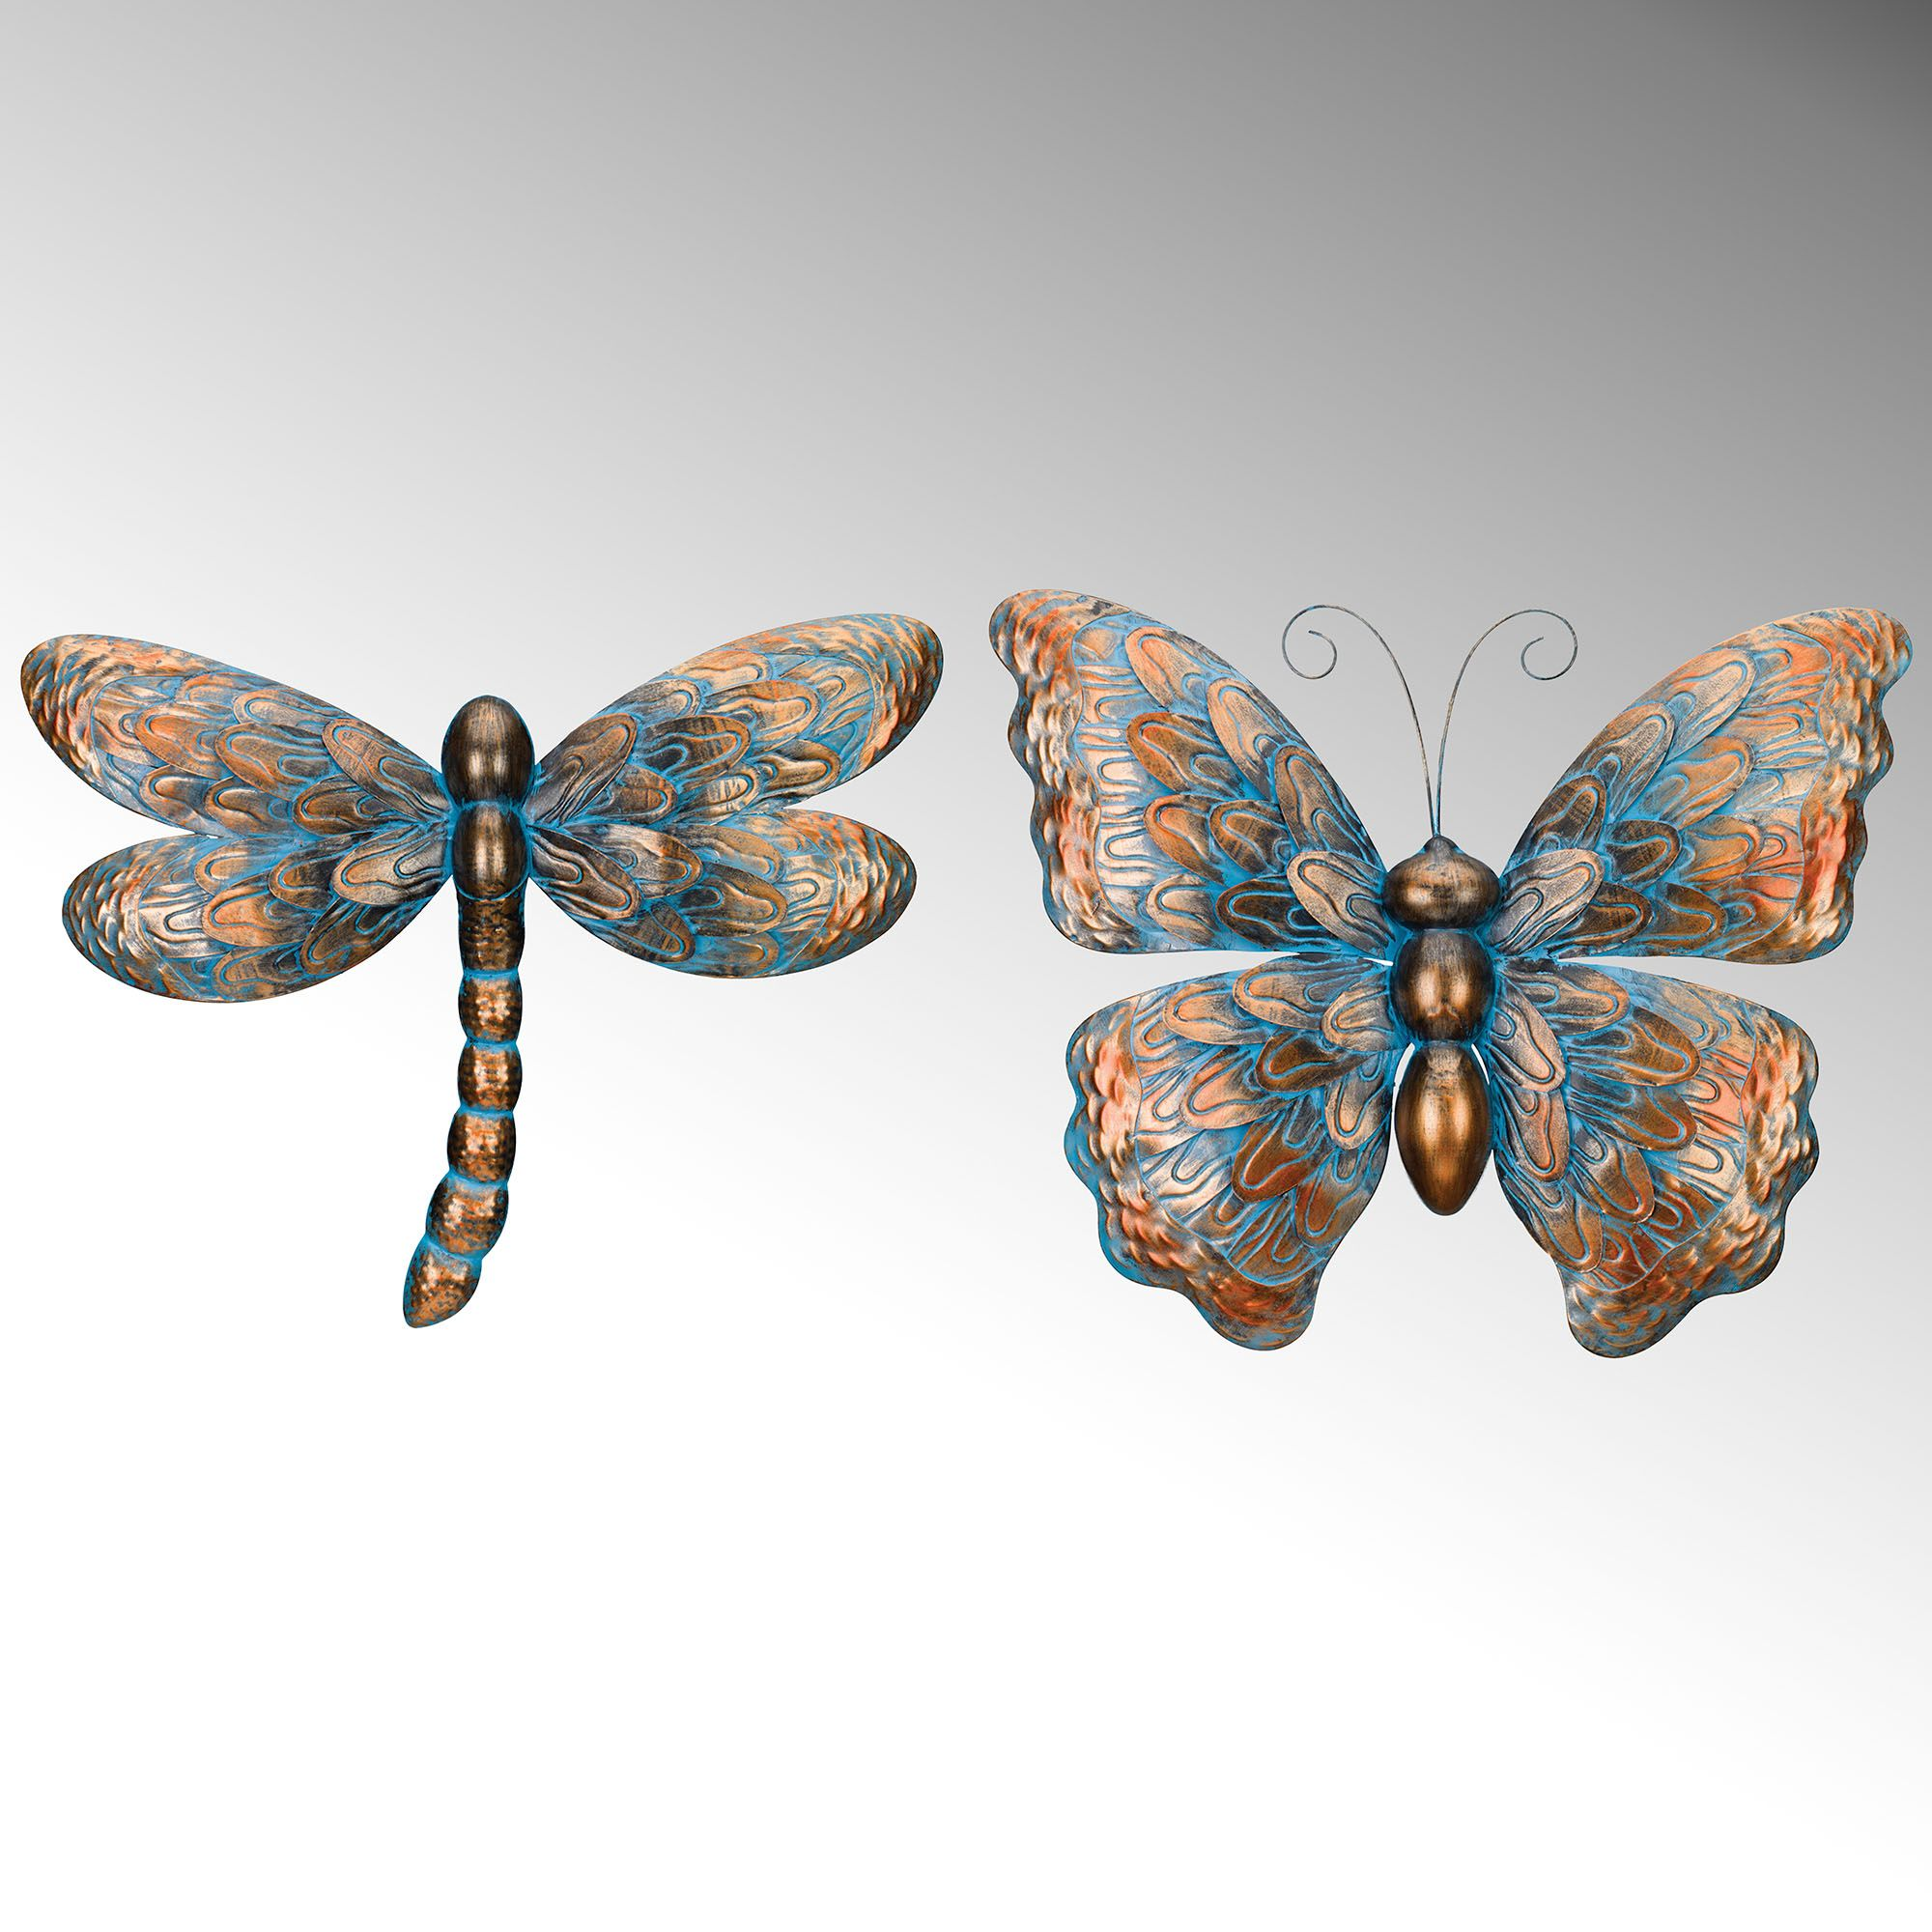 Summer beauties dragonfly and butterfly metal wall art set in